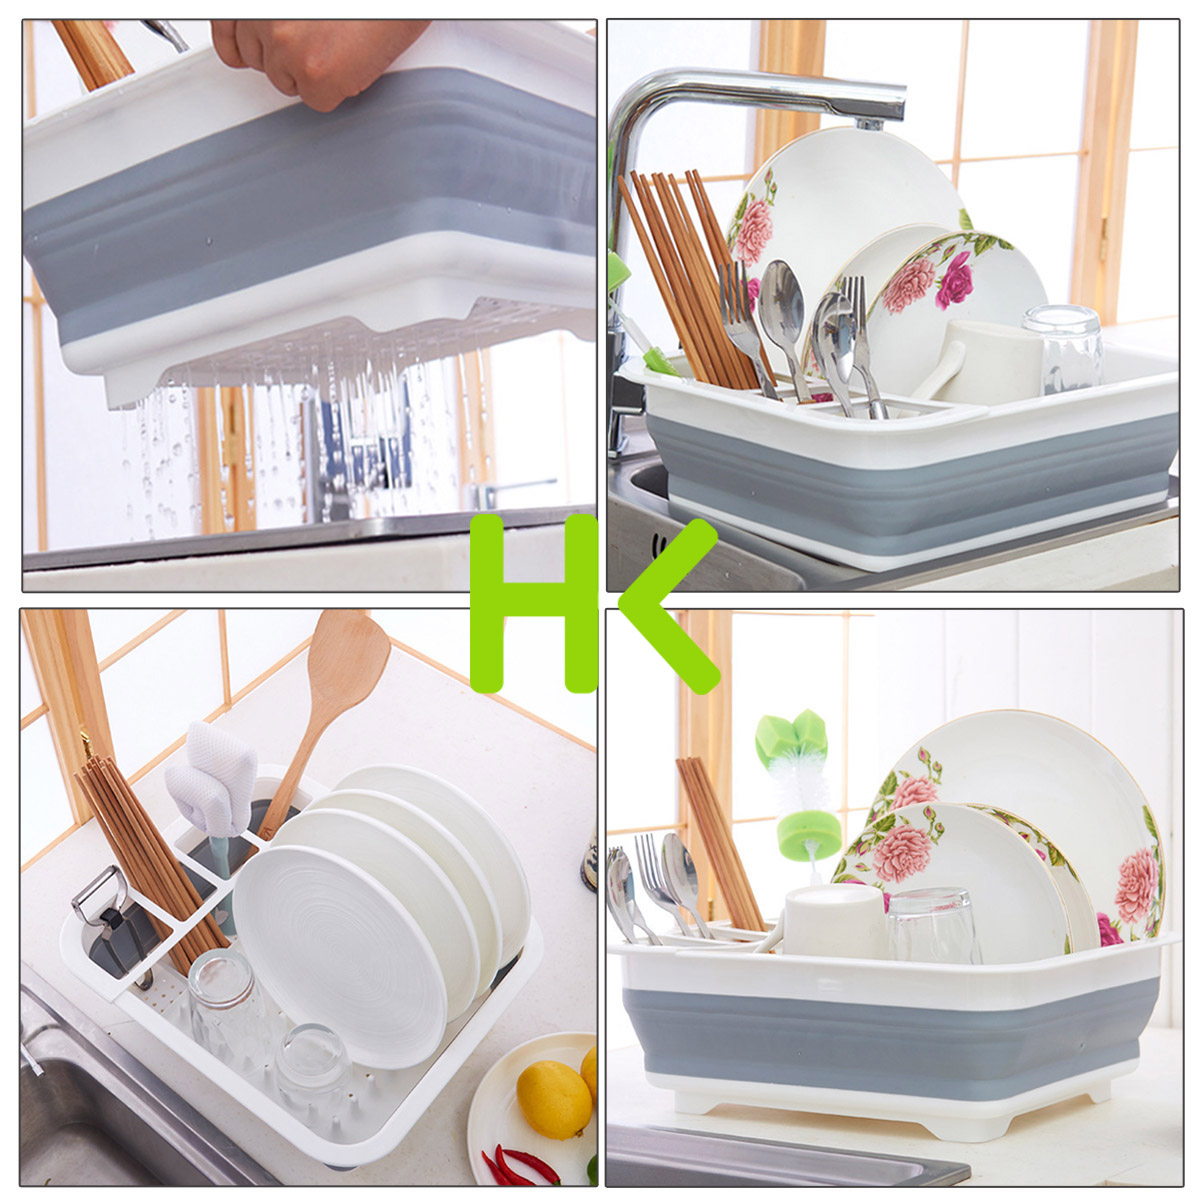 14.49x12.28x4.92 Dish Drying Rack Dish Drainer w/Utensil Holder Antimicrobial Multi-function Foldable